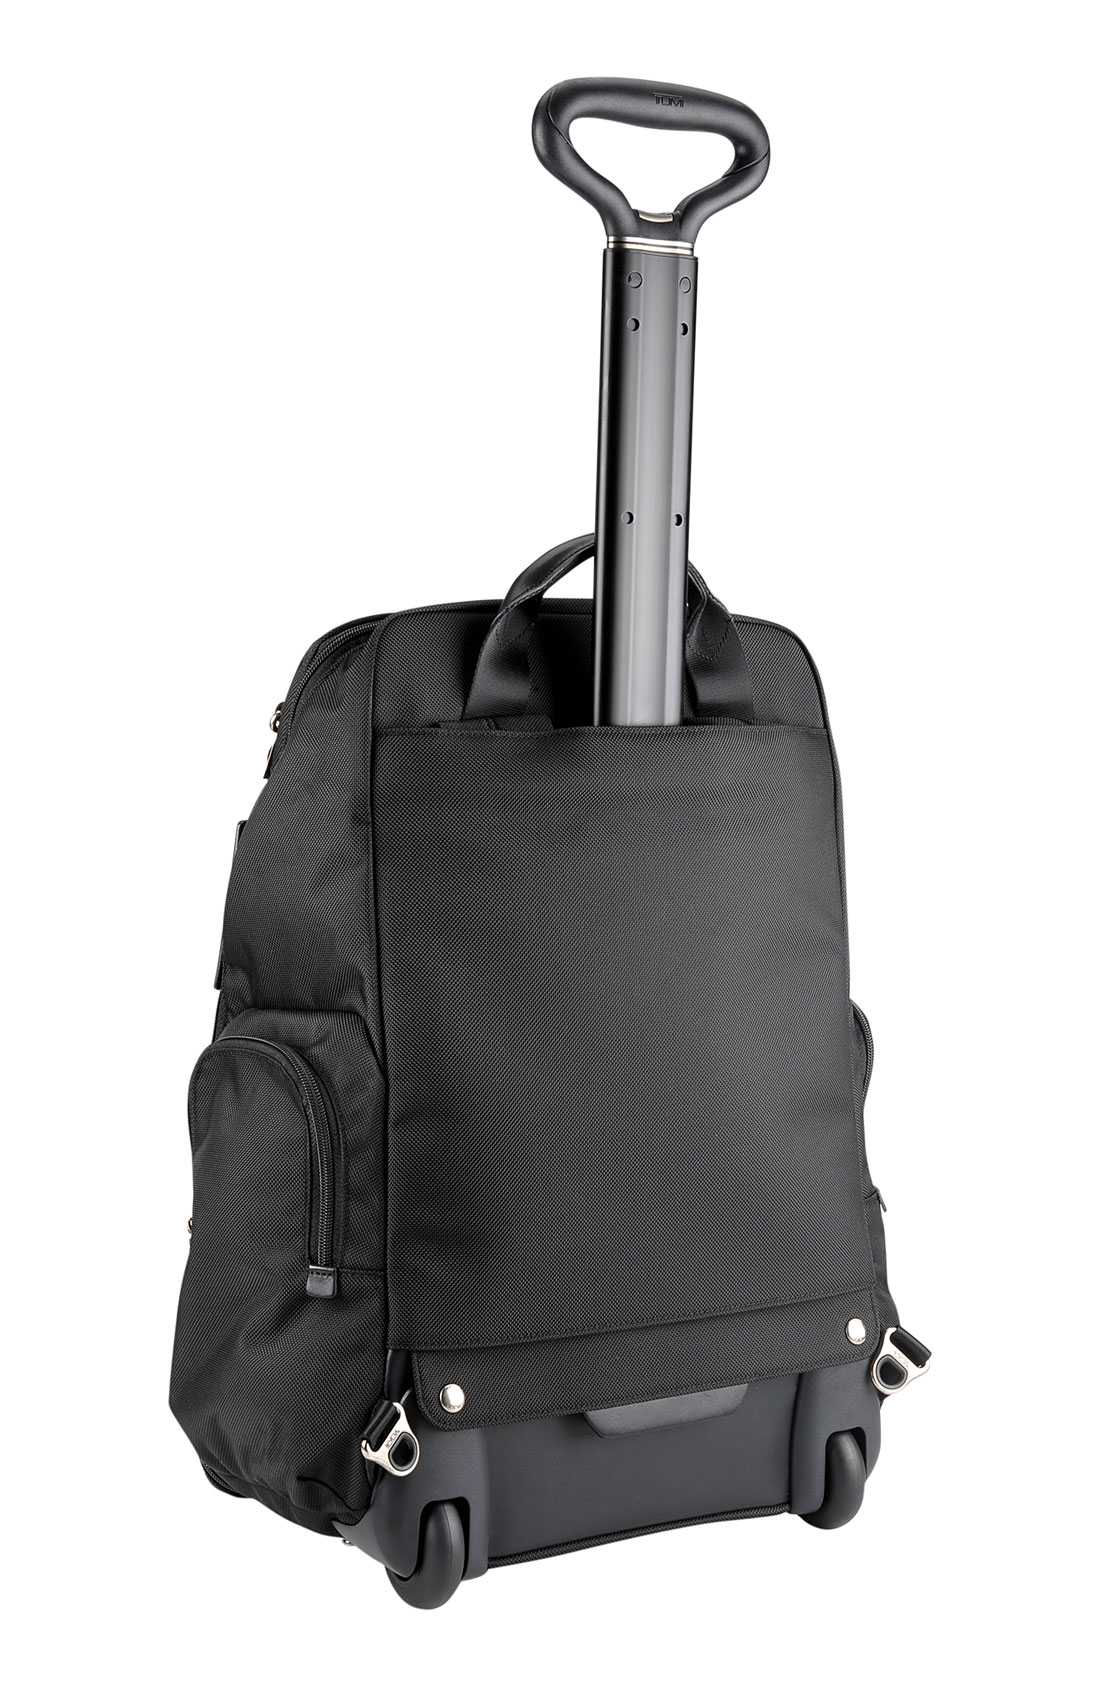 A sleek contemporary print brings a stylish look to this business-ready backpack from Tumi. The bag features space for a laptop and tablet, along with an array of other pockets and organizers inside and out.